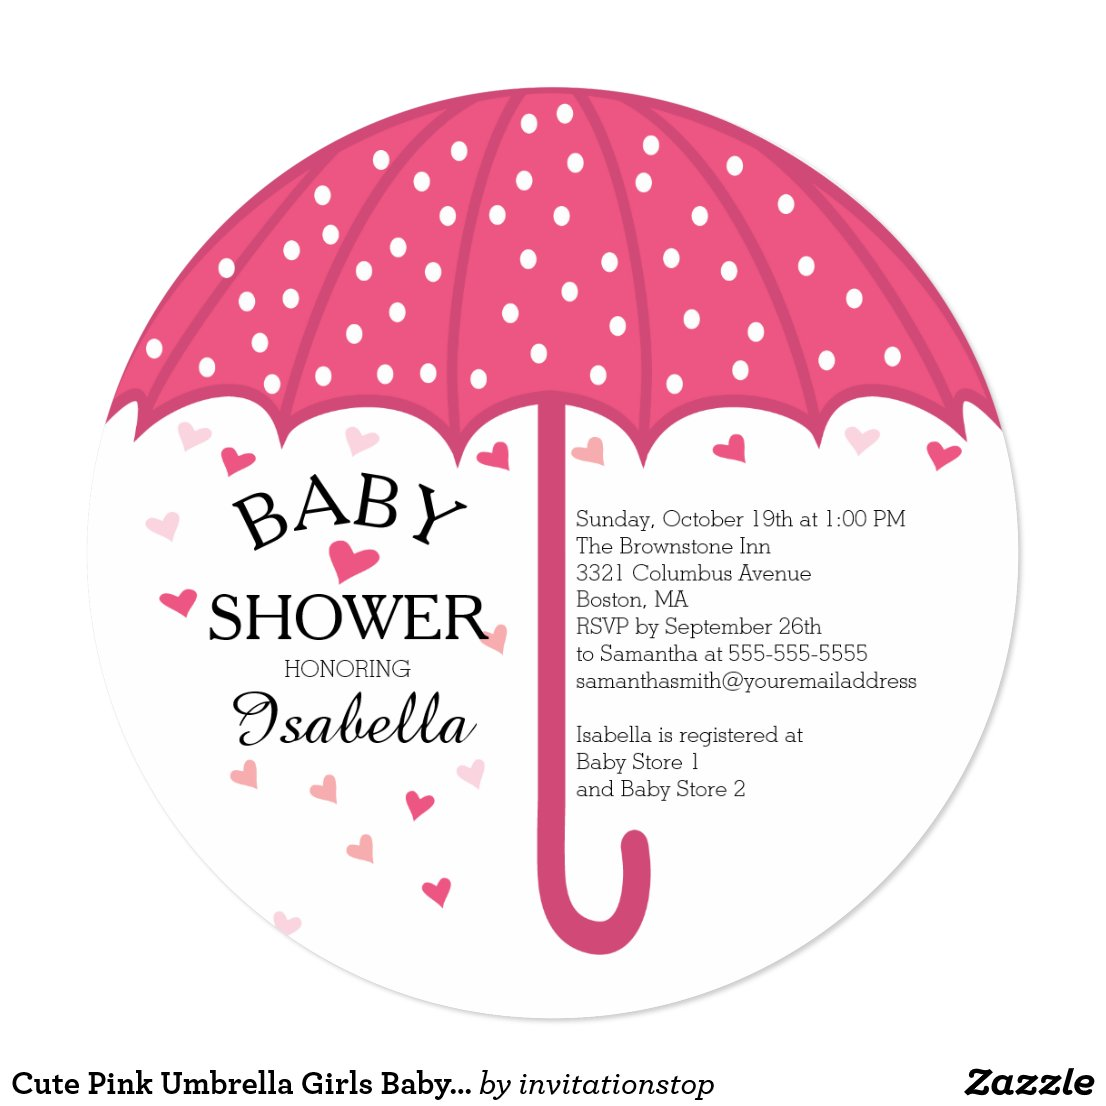 Cute Pink Umbrella Girls Baby Shower Invitation